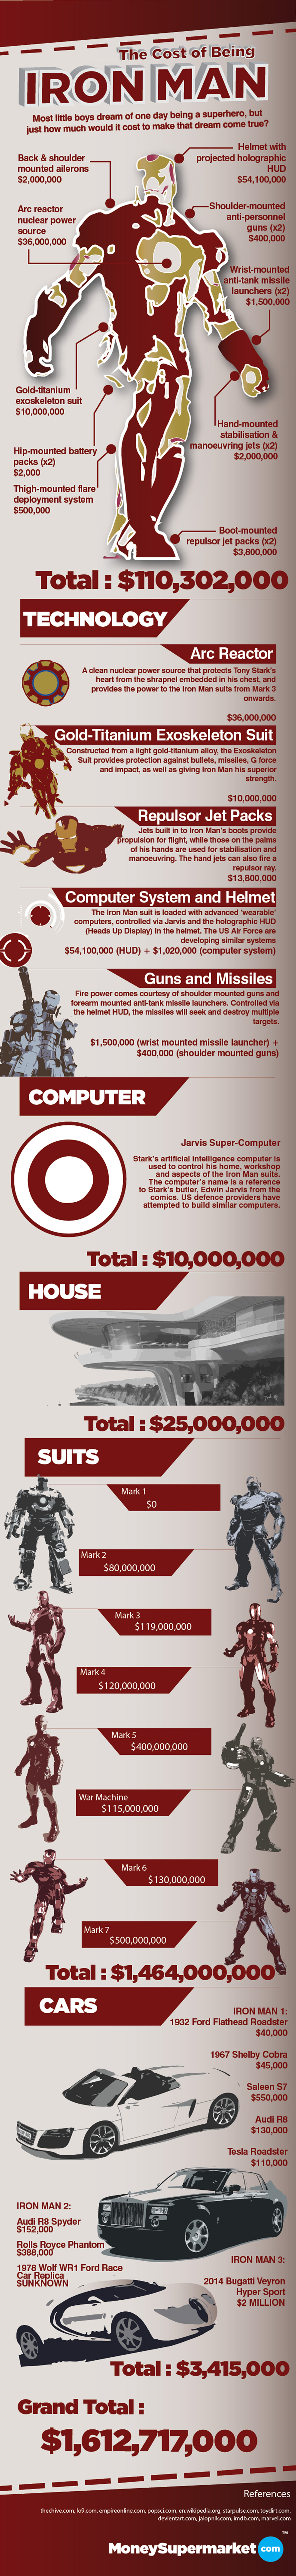 cost-of-being-iron-man-infographic